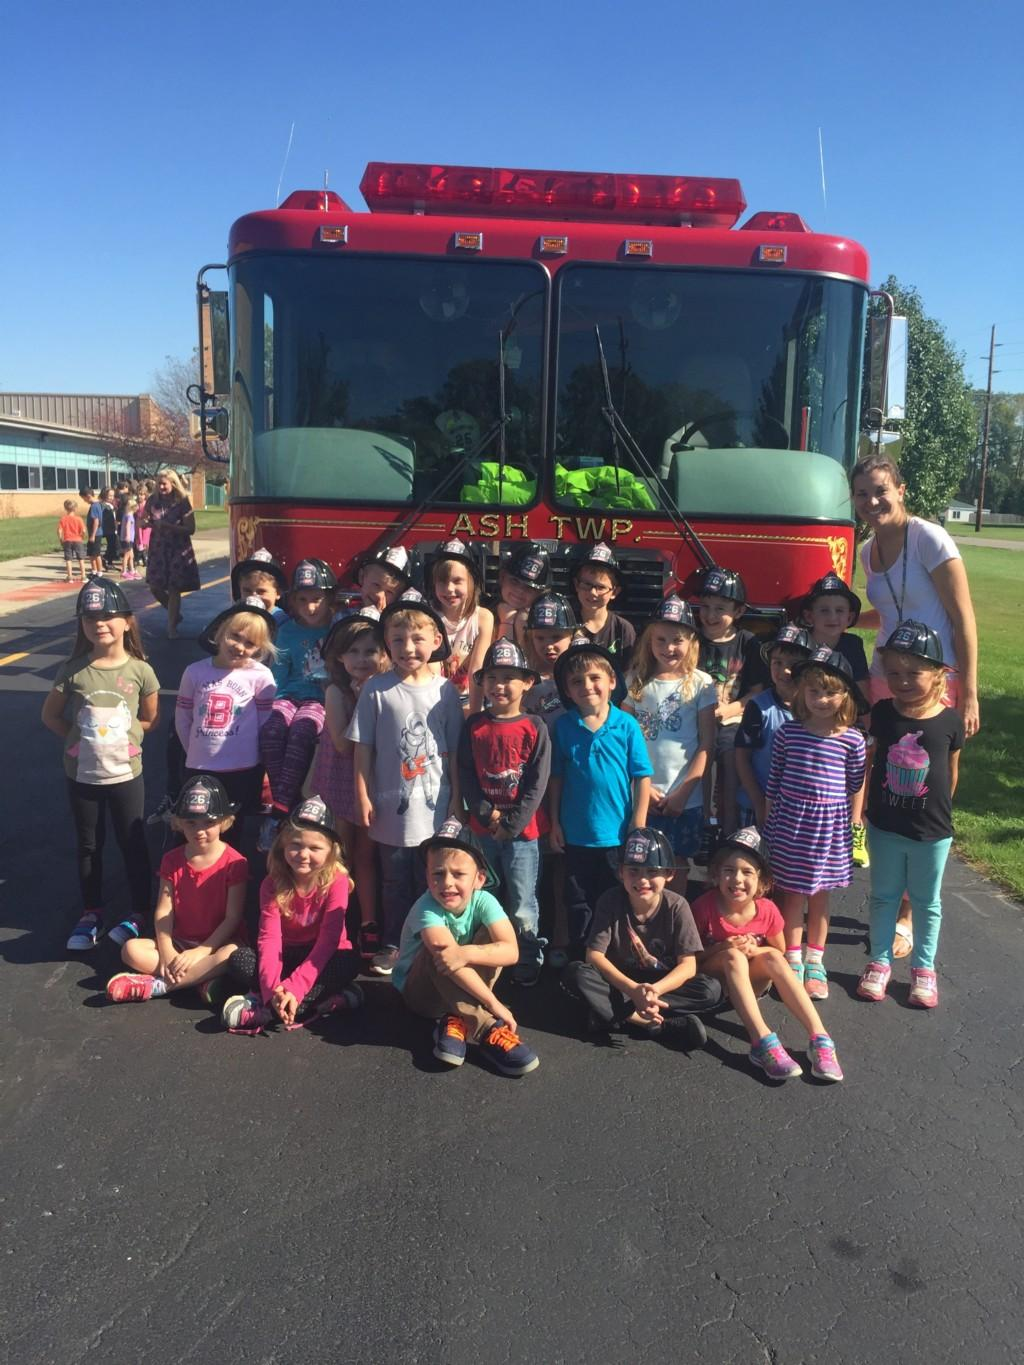 Fire Truck with classroom of students